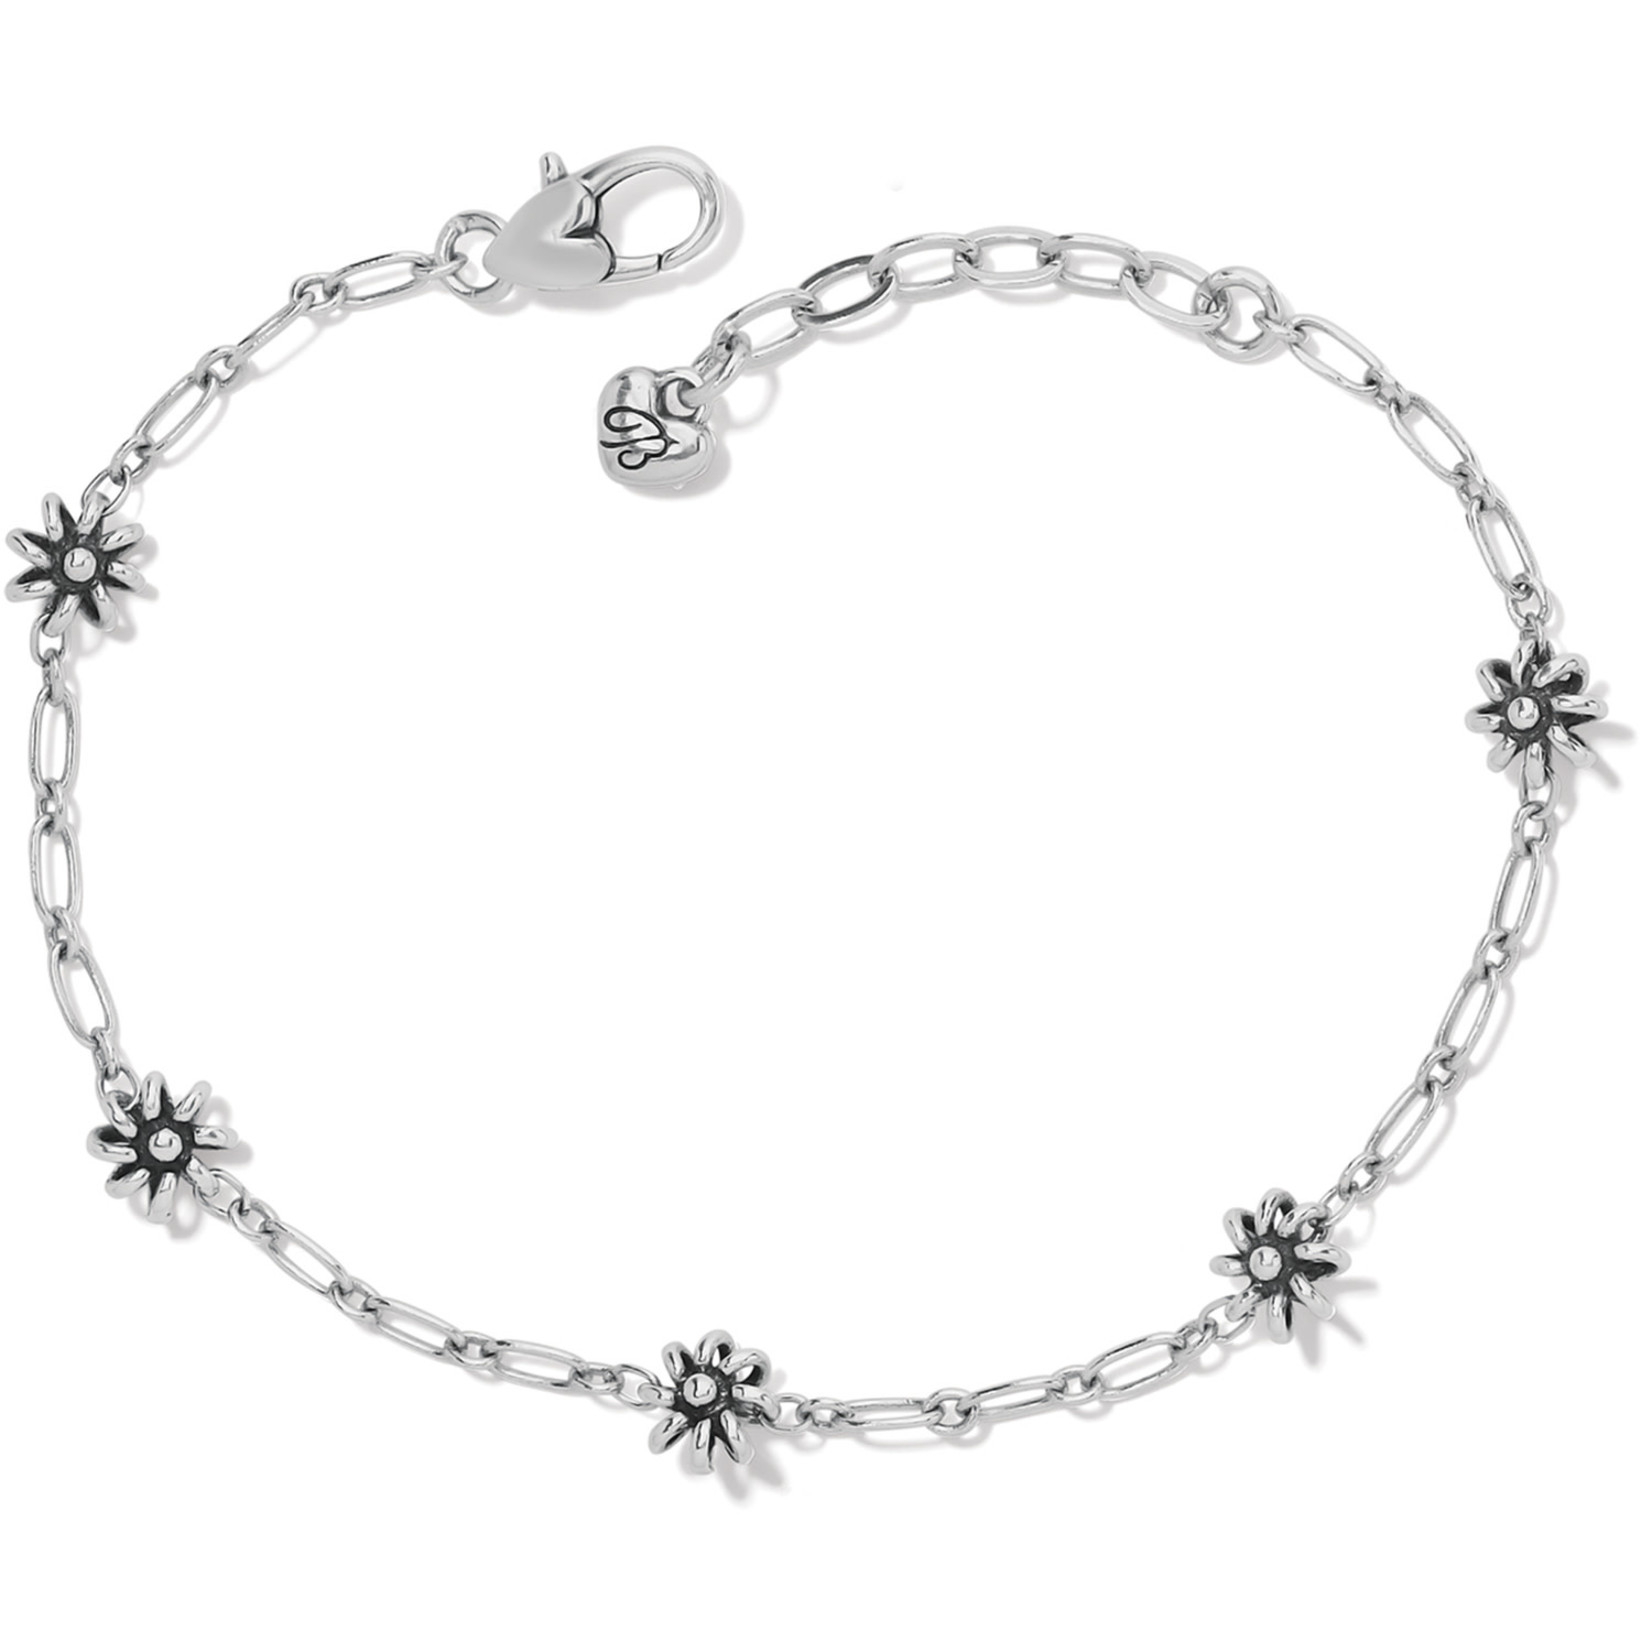 Brighton Daisy Chain Anklet - Silver